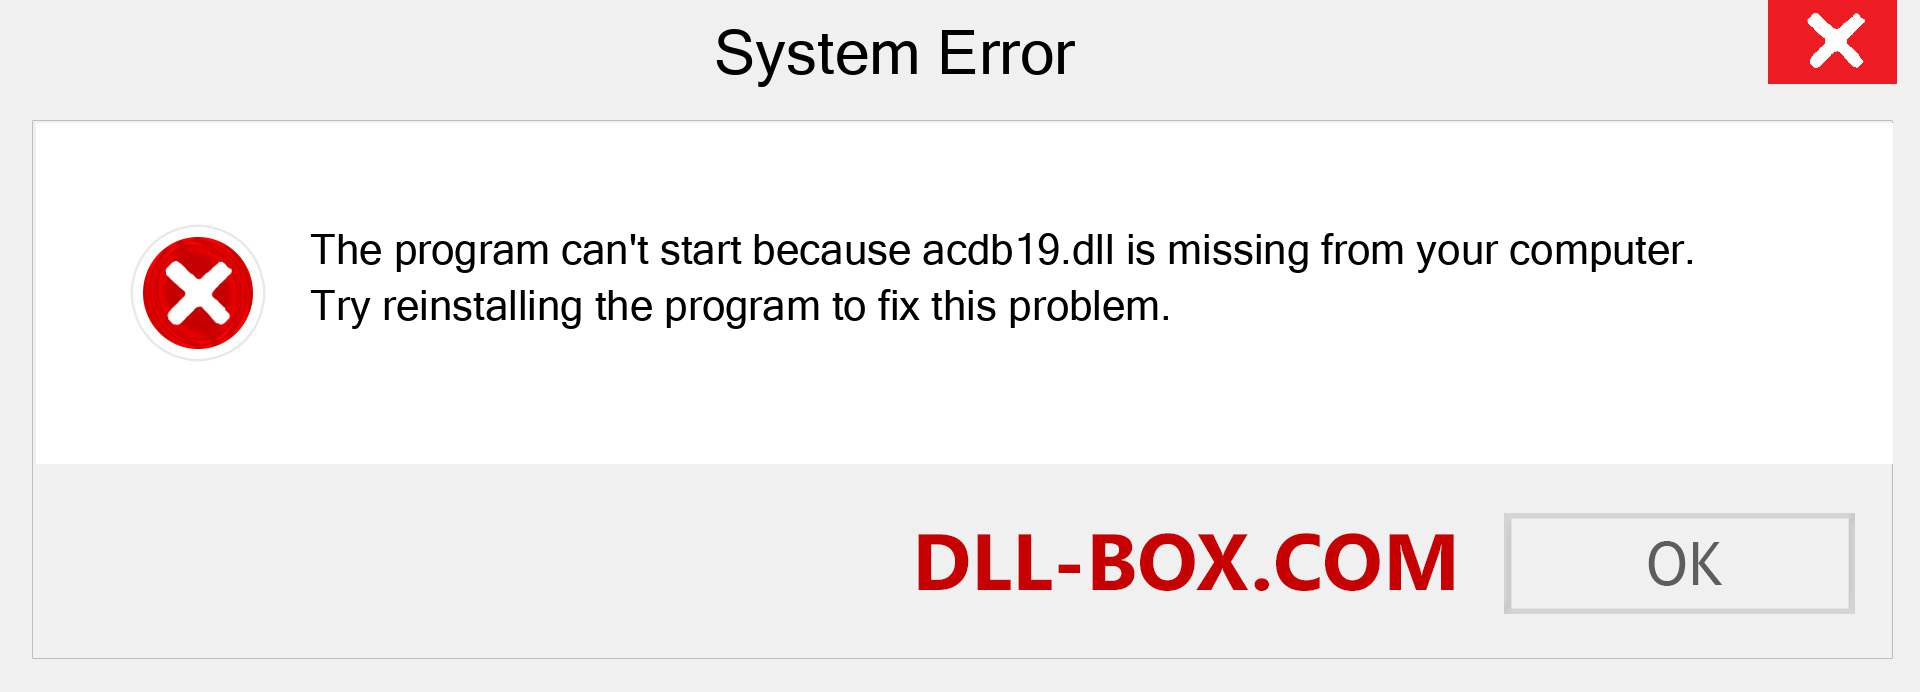 acdb19.dll file is missing?. Download for Windows 7, 8, 10 - Fix  acdb19 dll Missing Error on Windows, photos, images